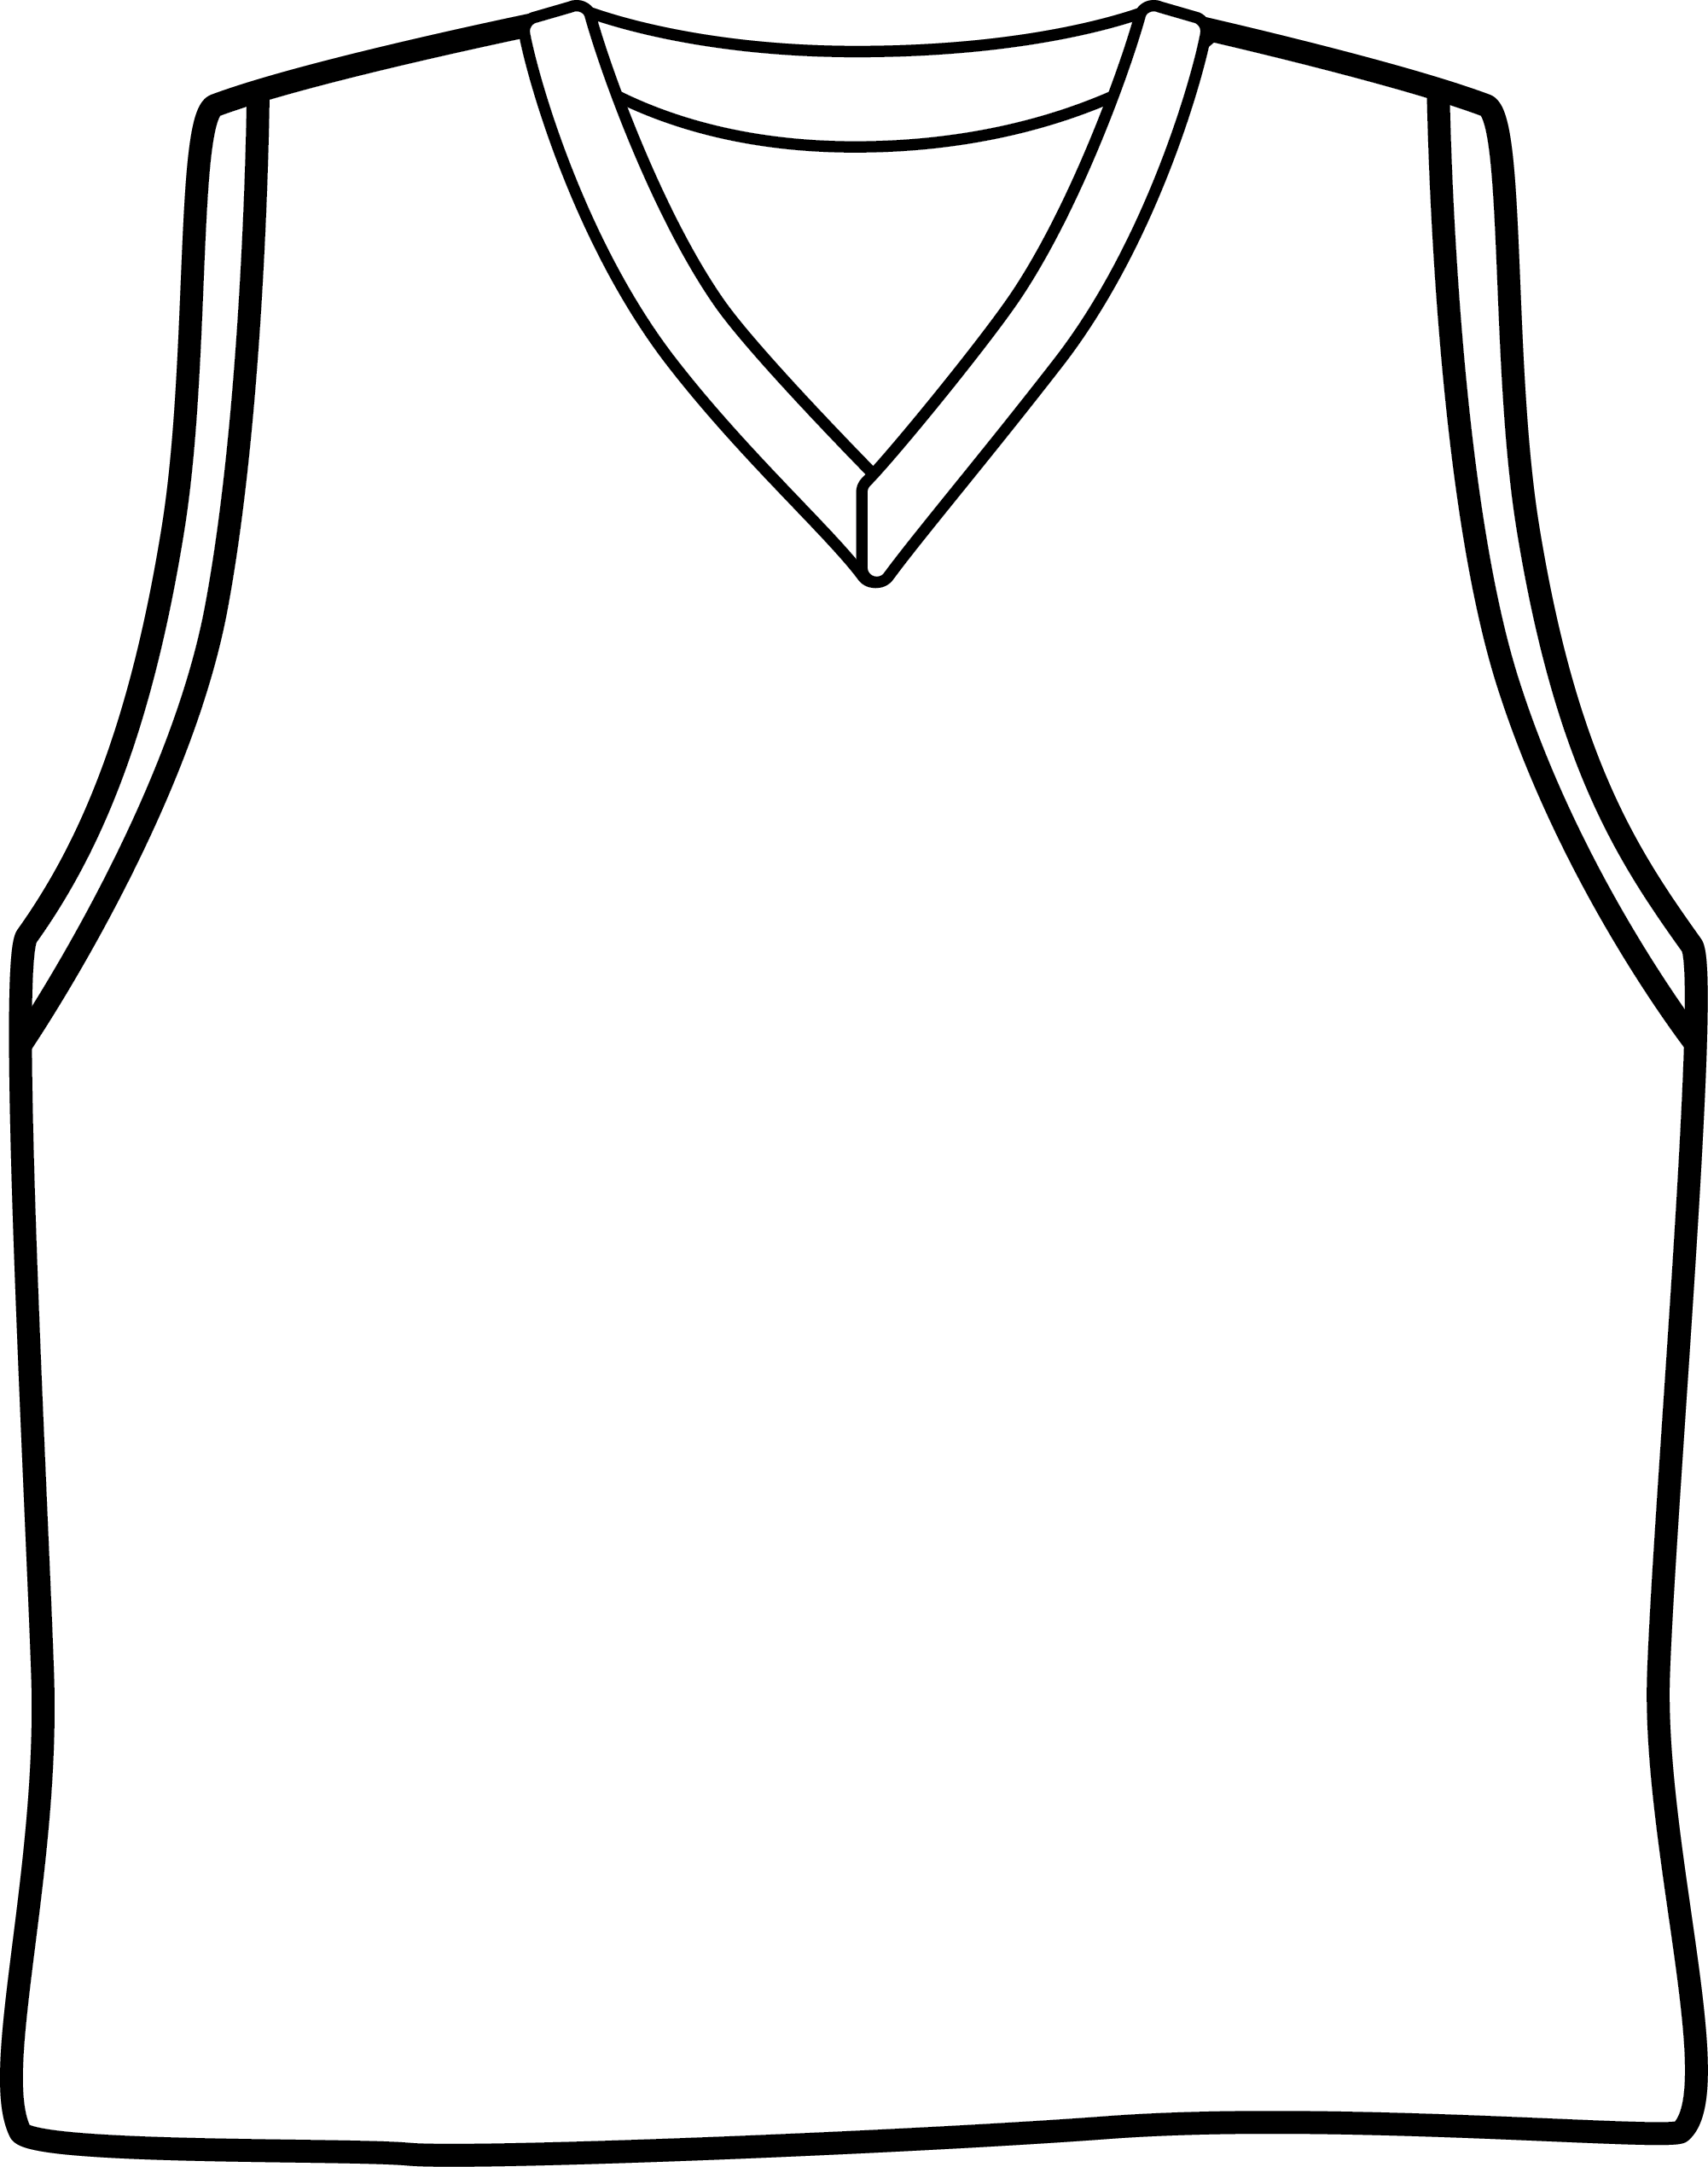 Free Basketball Jersey Cliparts, Download Free Clip Art.